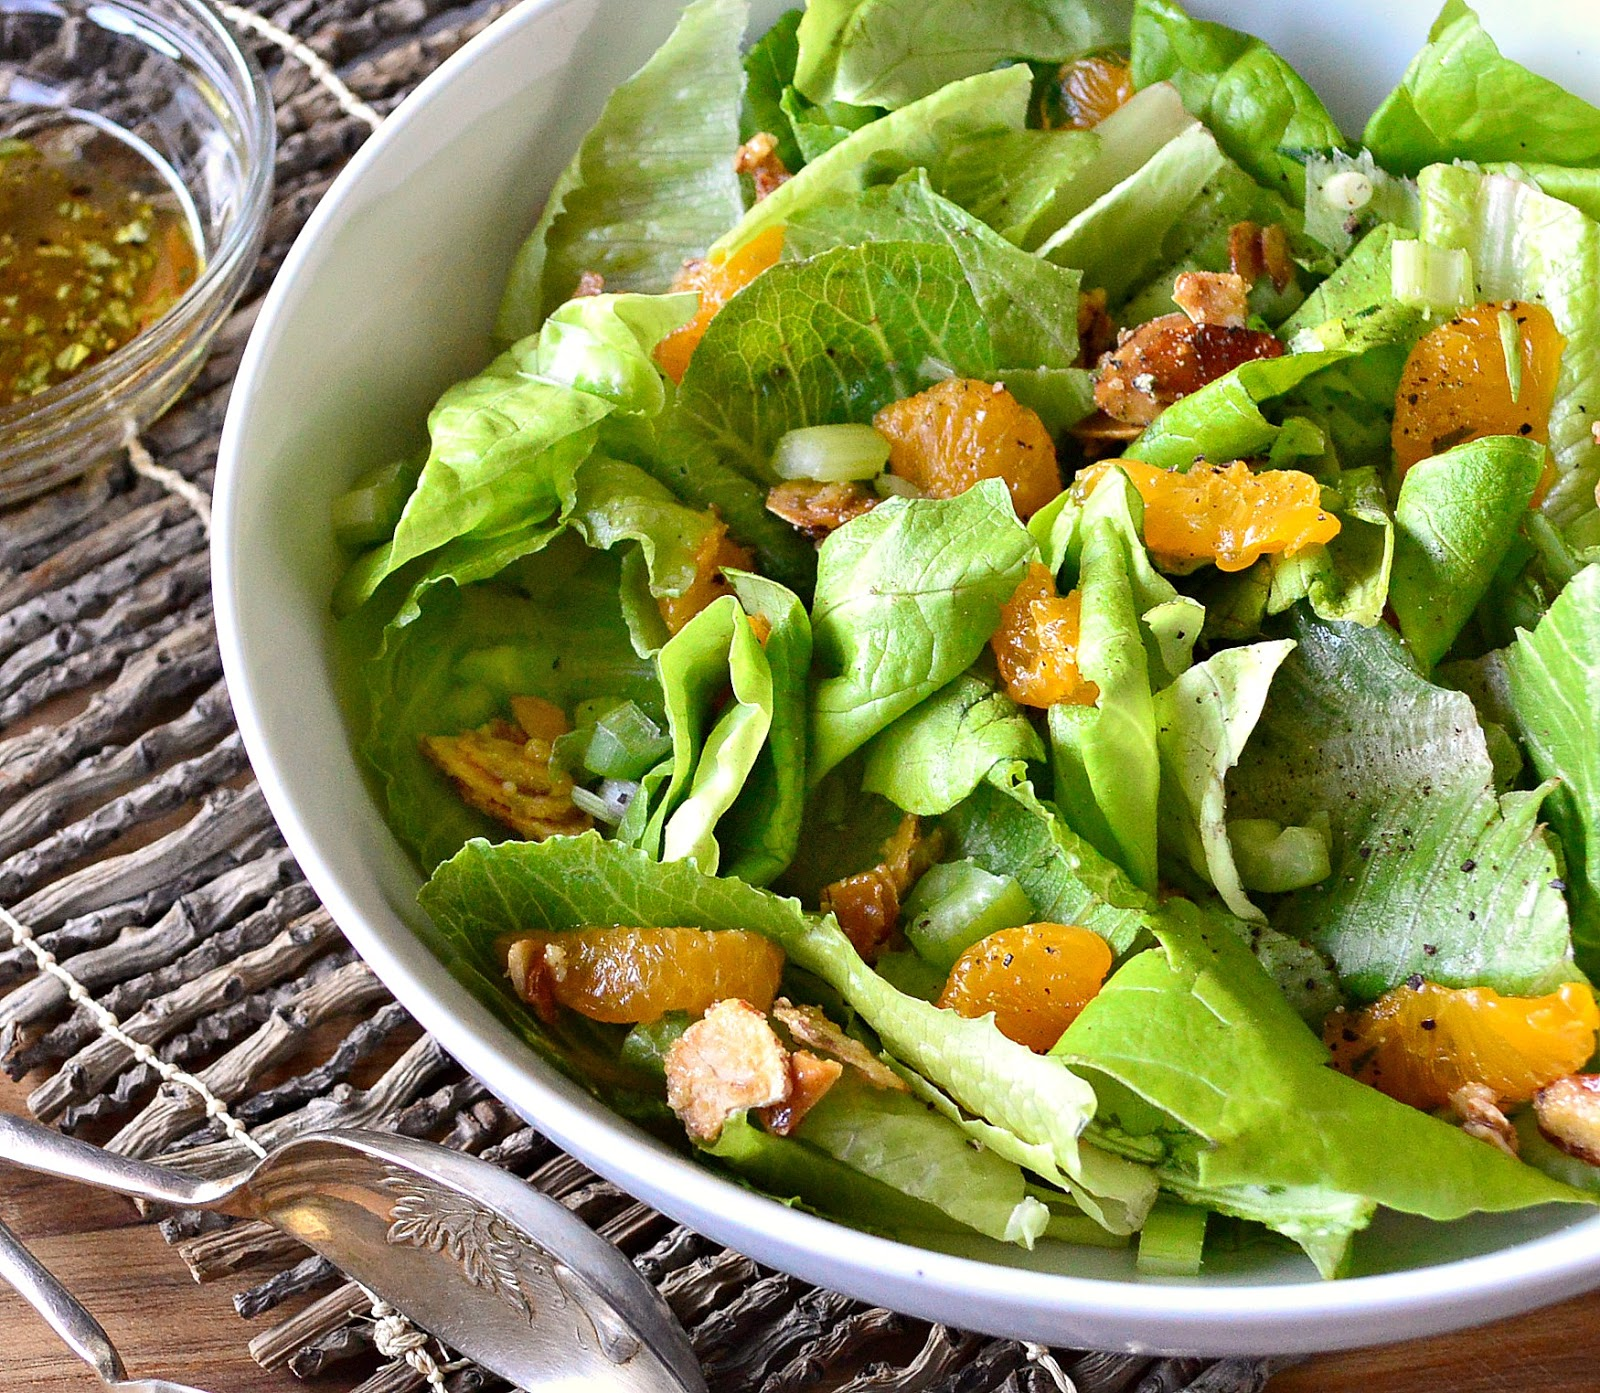 Directions In a large bowl tear lettuce into small pieces Drain oranges and reserve 2 Tbsp of juice Mix reserved juice vinegar onion powder and garlic powder